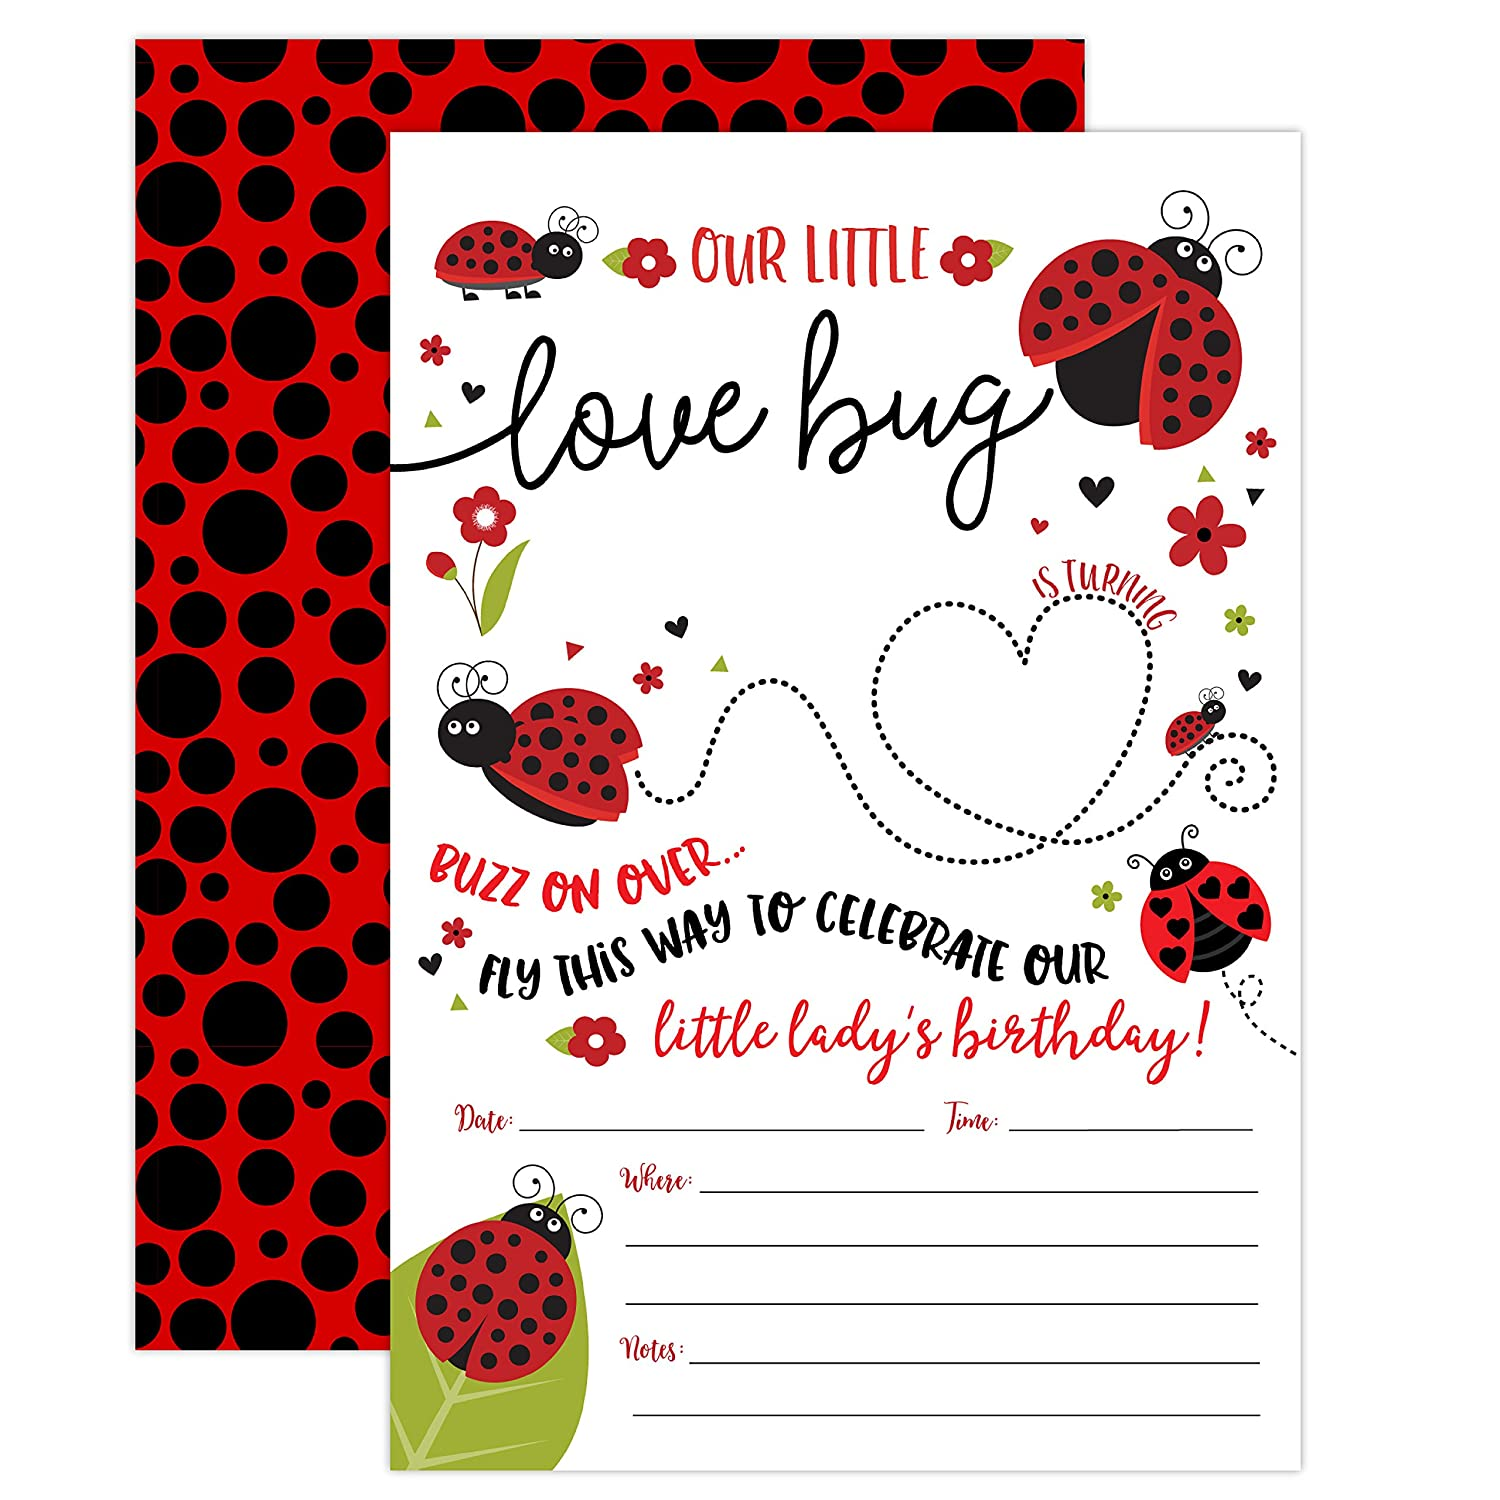 Ladybug Birthday Invitation, Lady Bug Party Invite 20 Fill In Style with Envelopes, Little Lady Girl Birthday Invitations